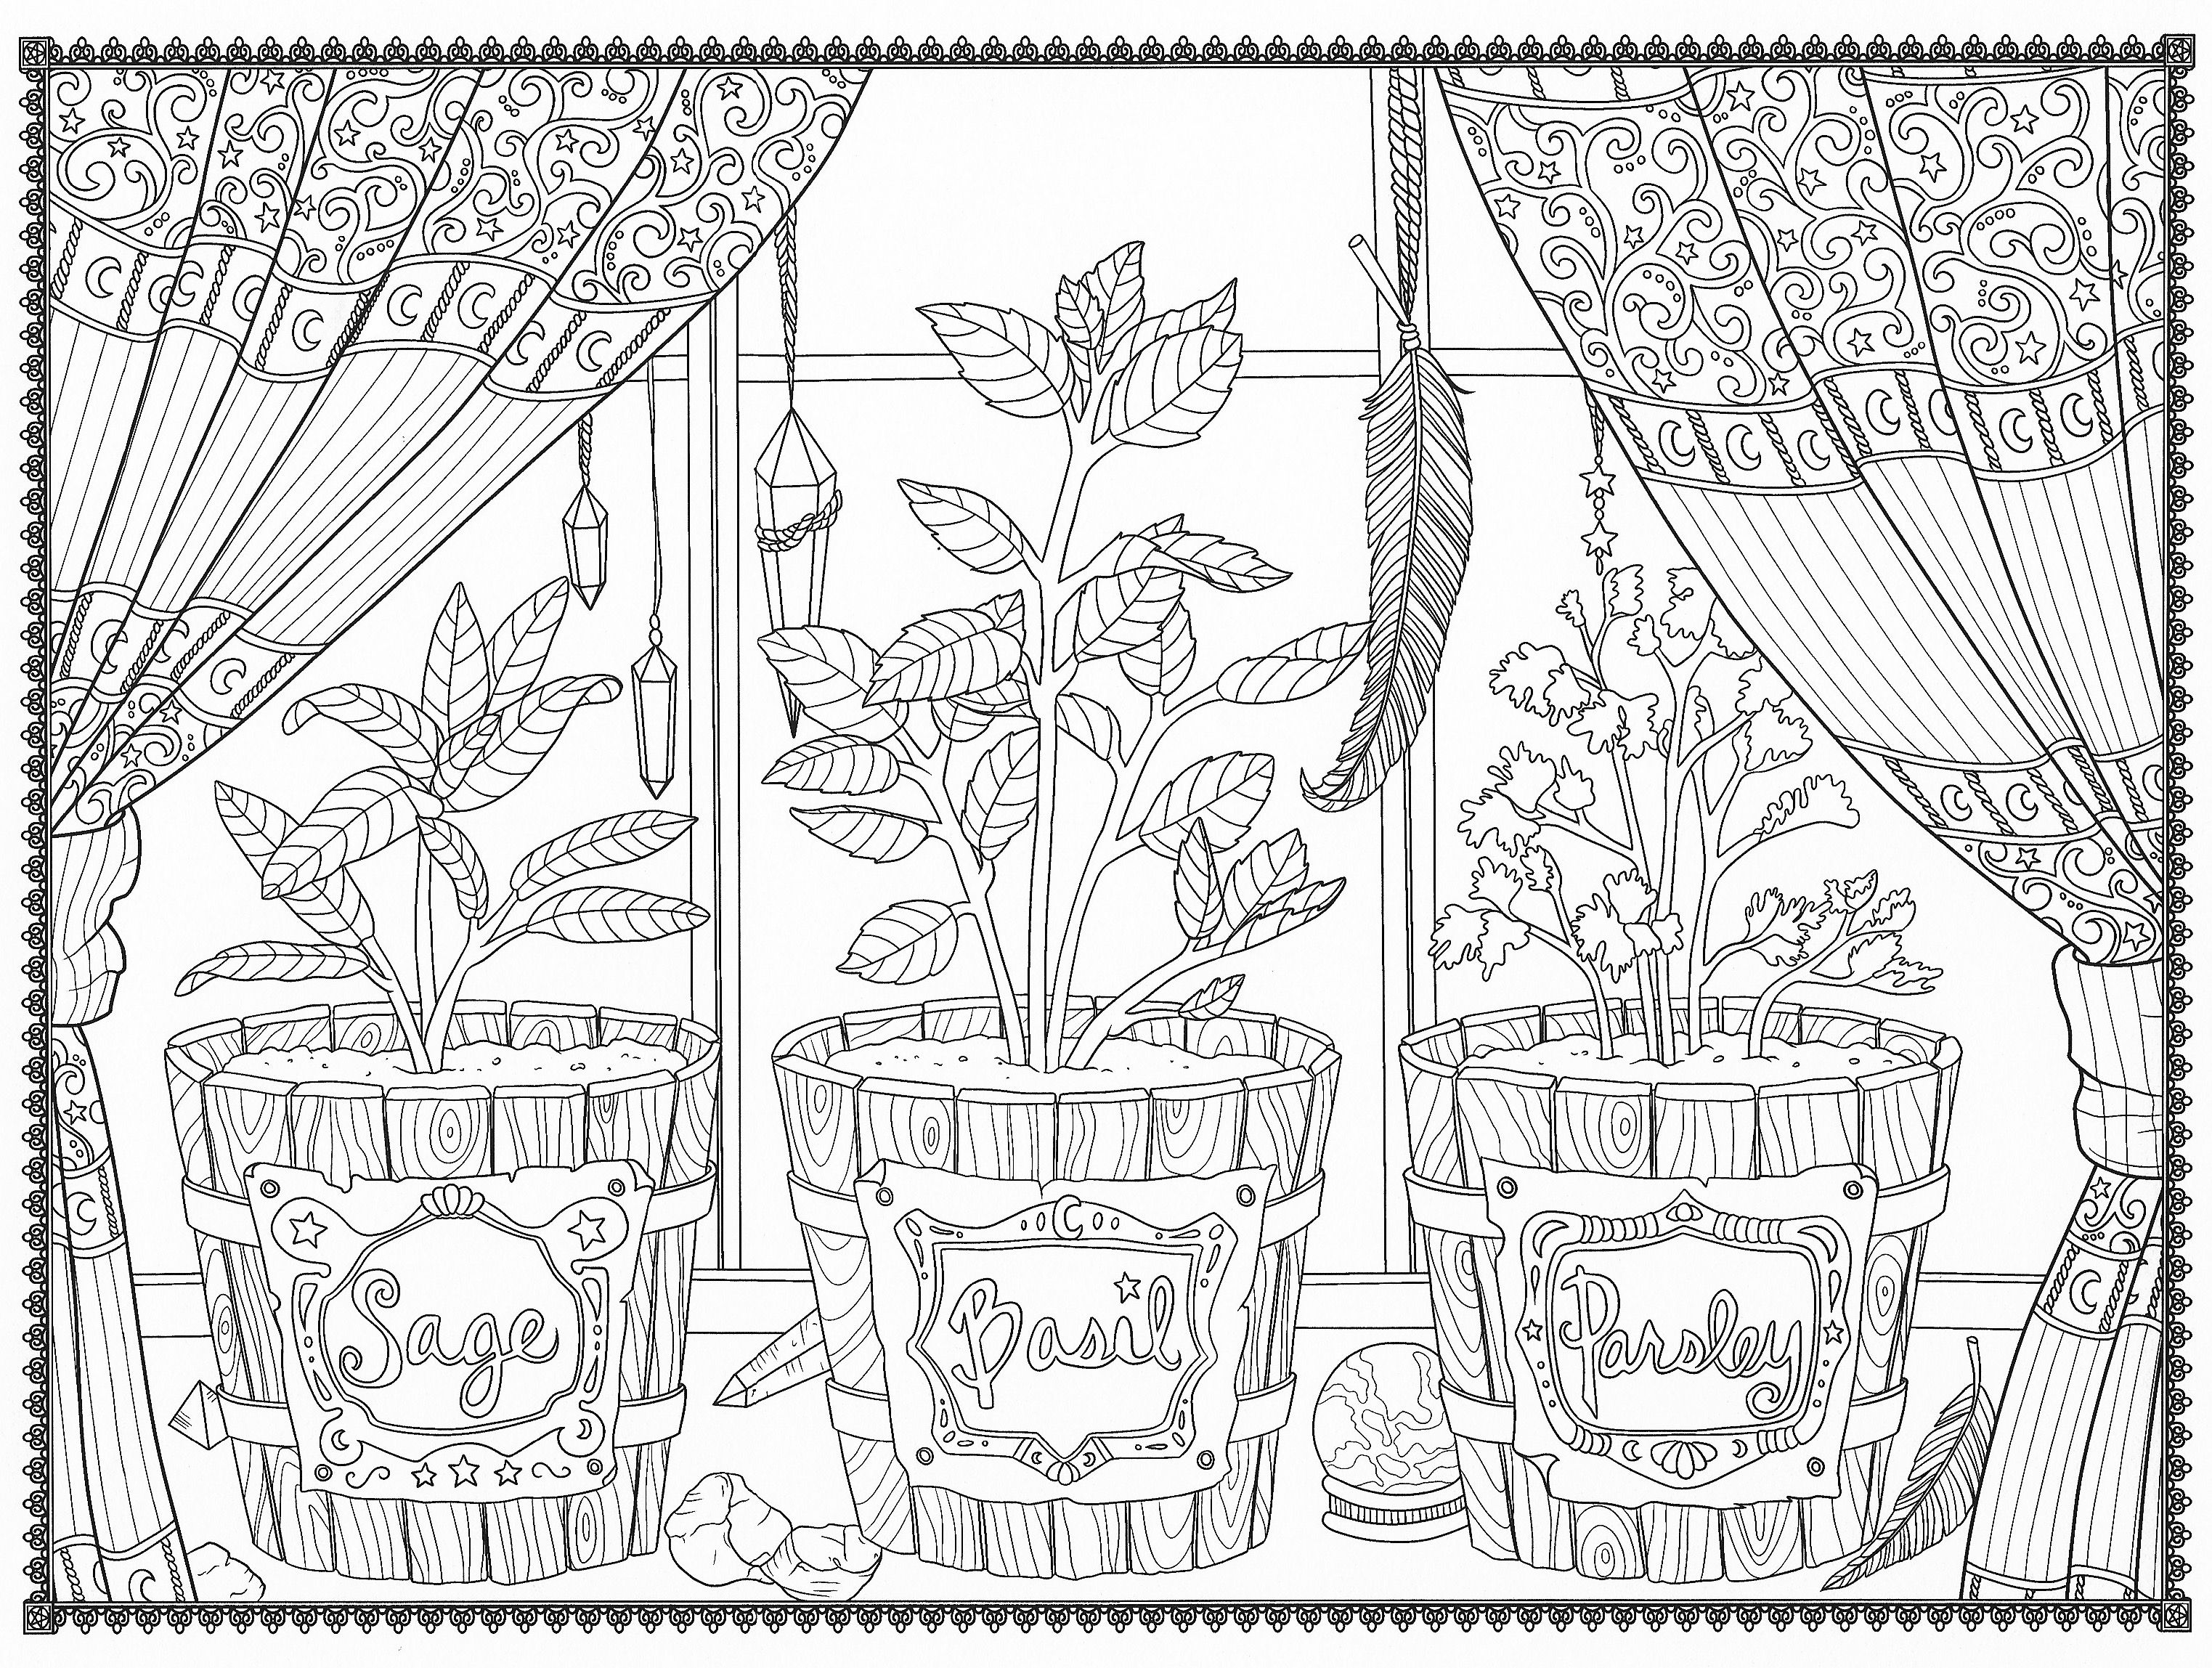 herbs coloring pages - photo#16